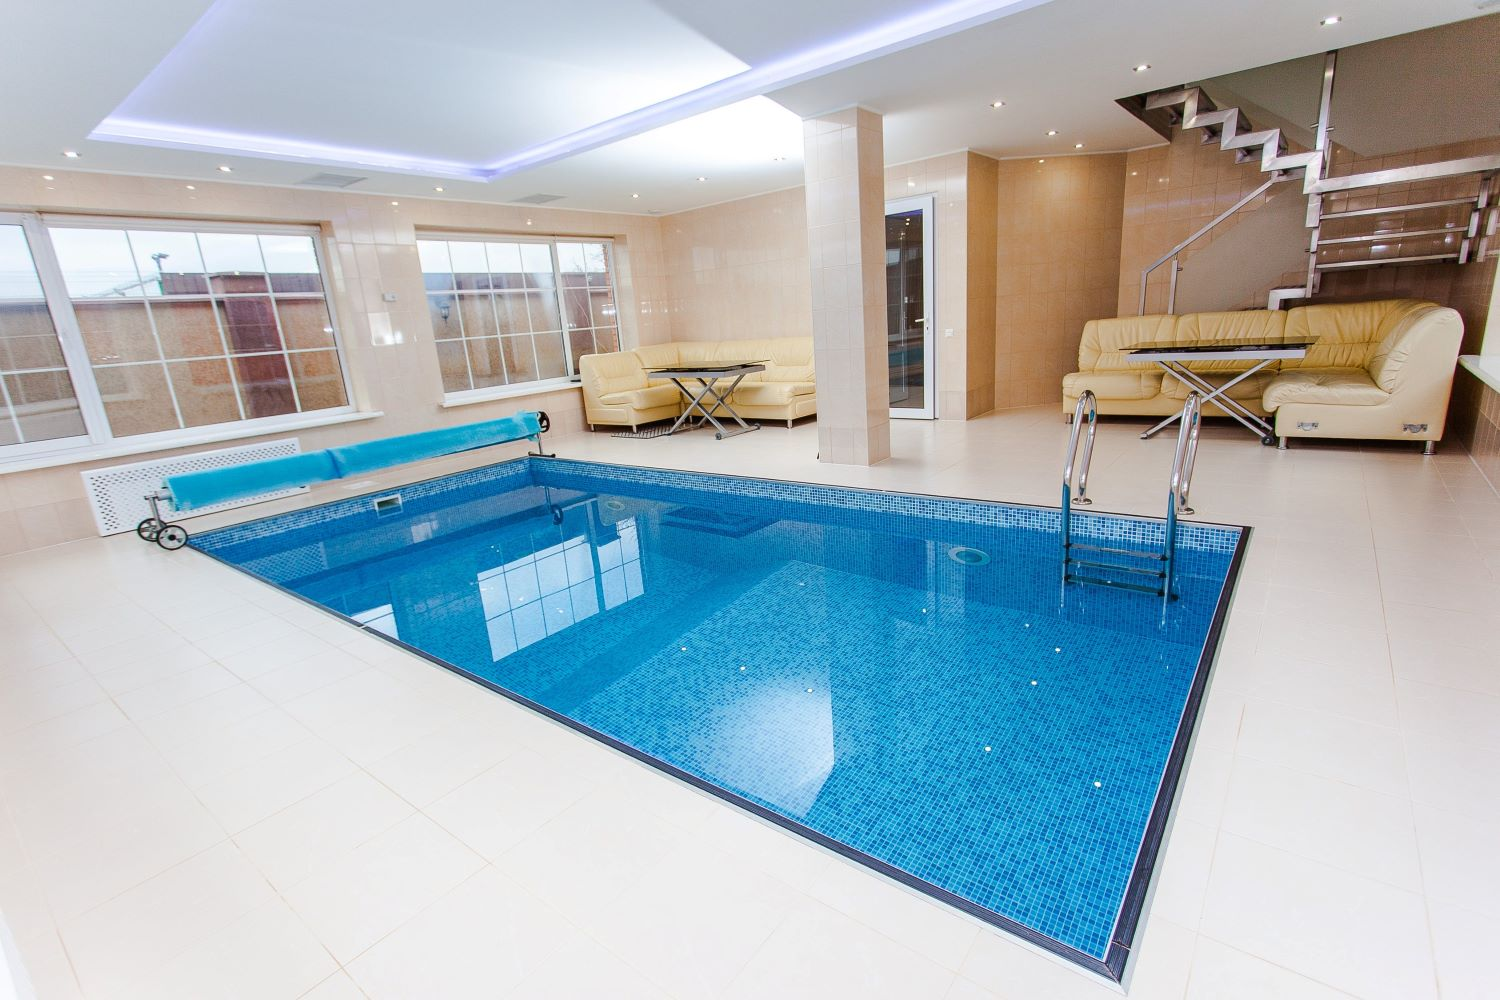 What is a Good Swimming Pool Size?